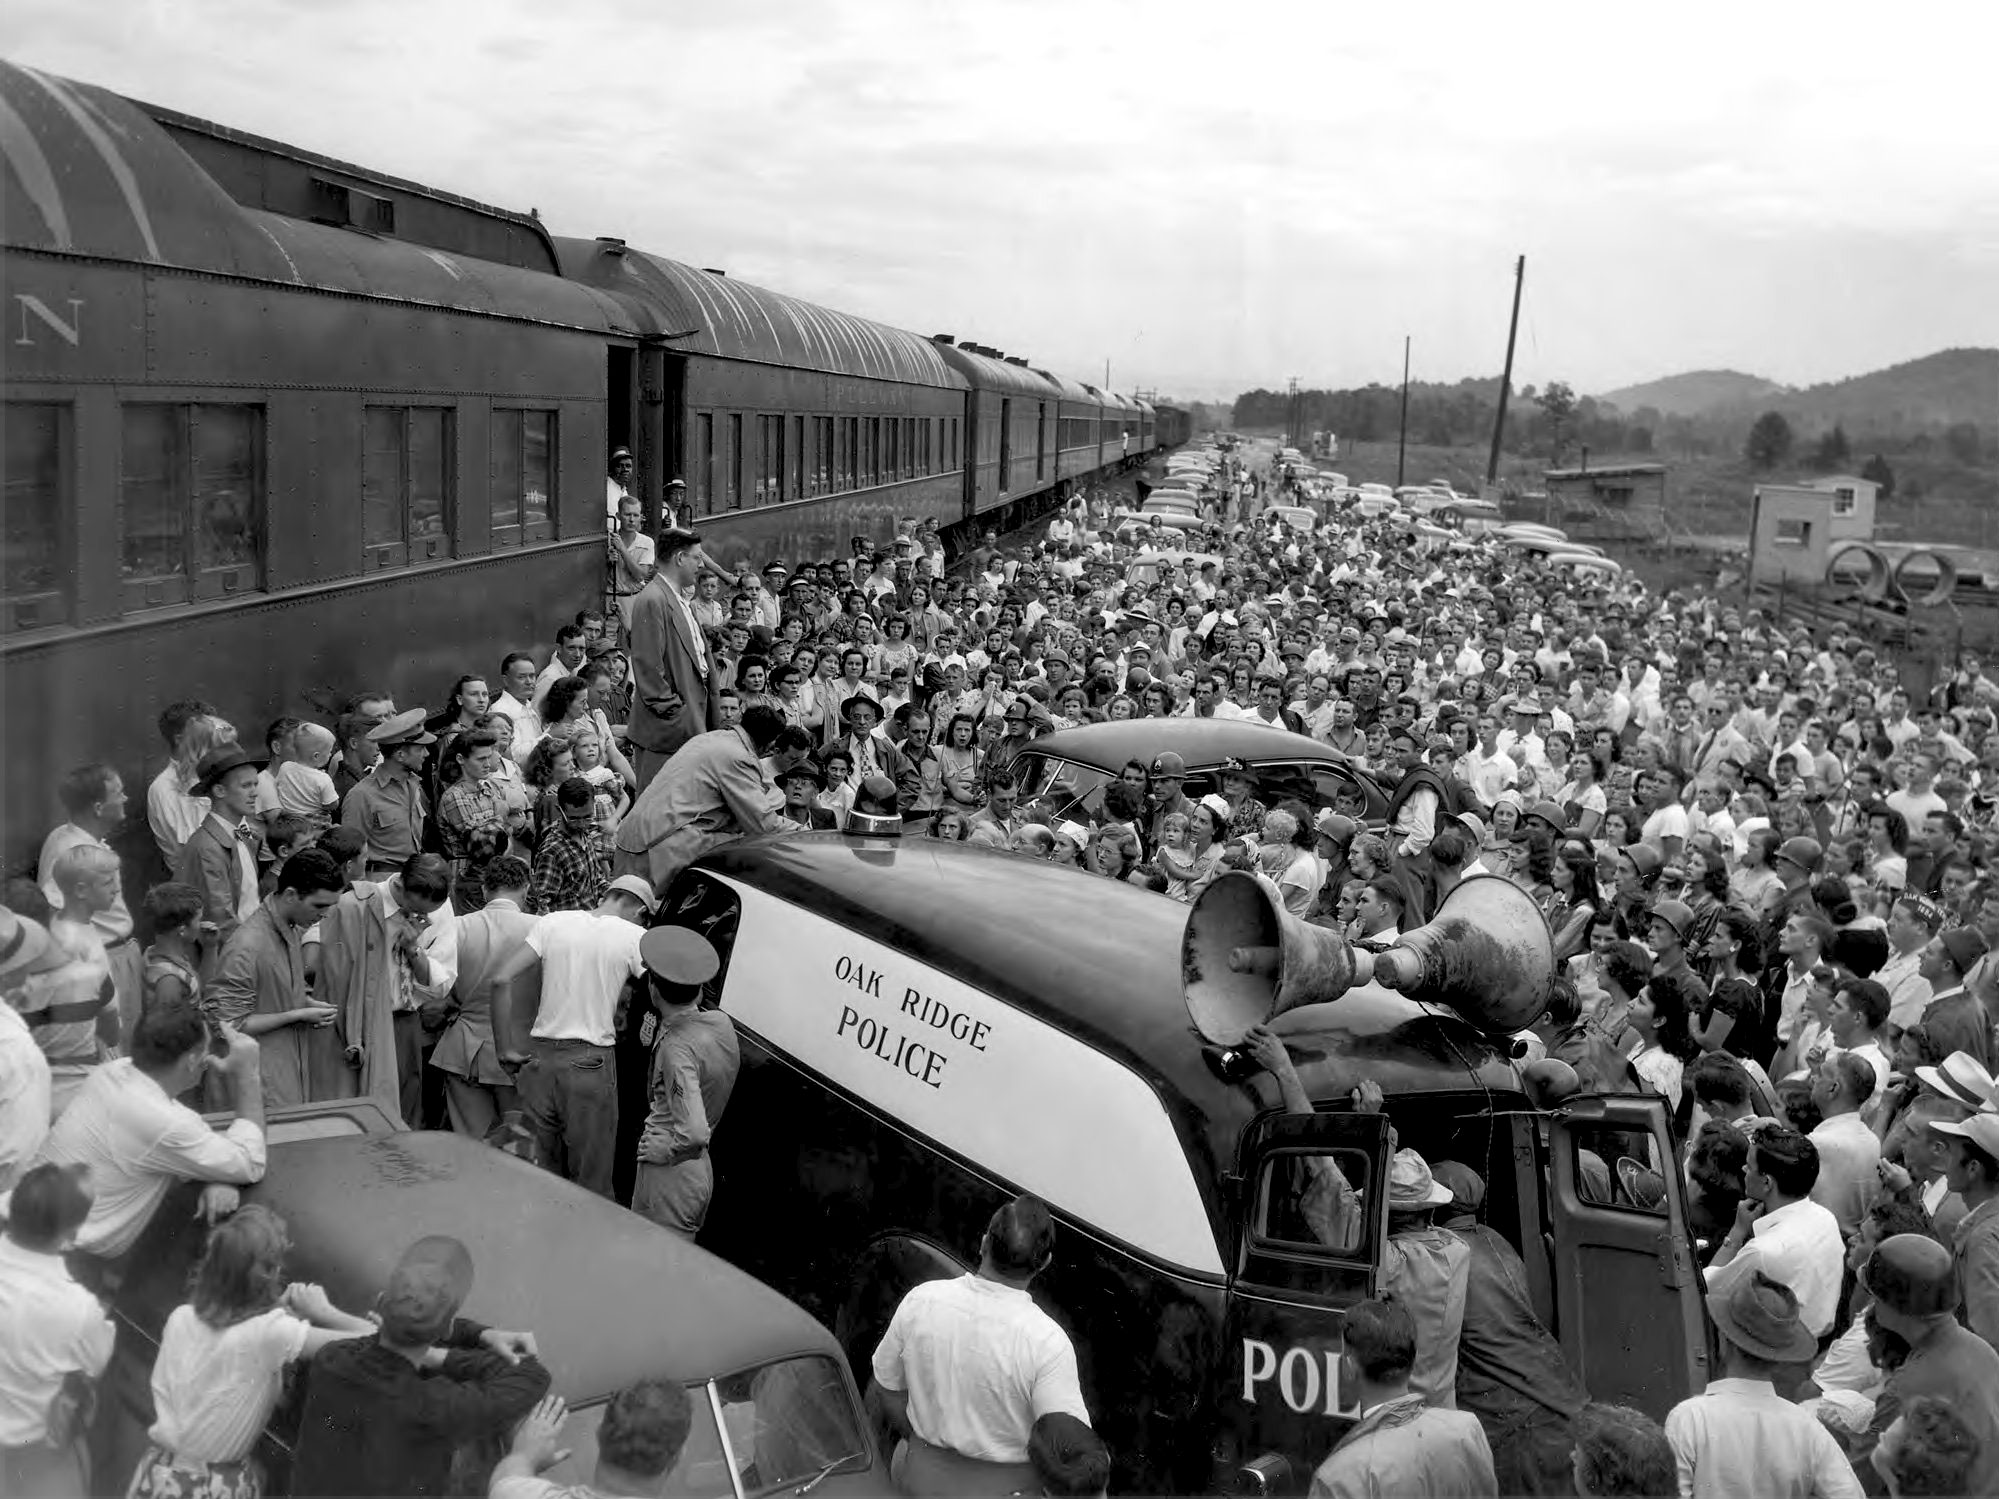 """A wounded soldier speaks to a large crowd in front of a train. An automobile with a loudspeaker mounted on top is nearby and is labeled """"Oak Ridge Police. Circa 1944."""